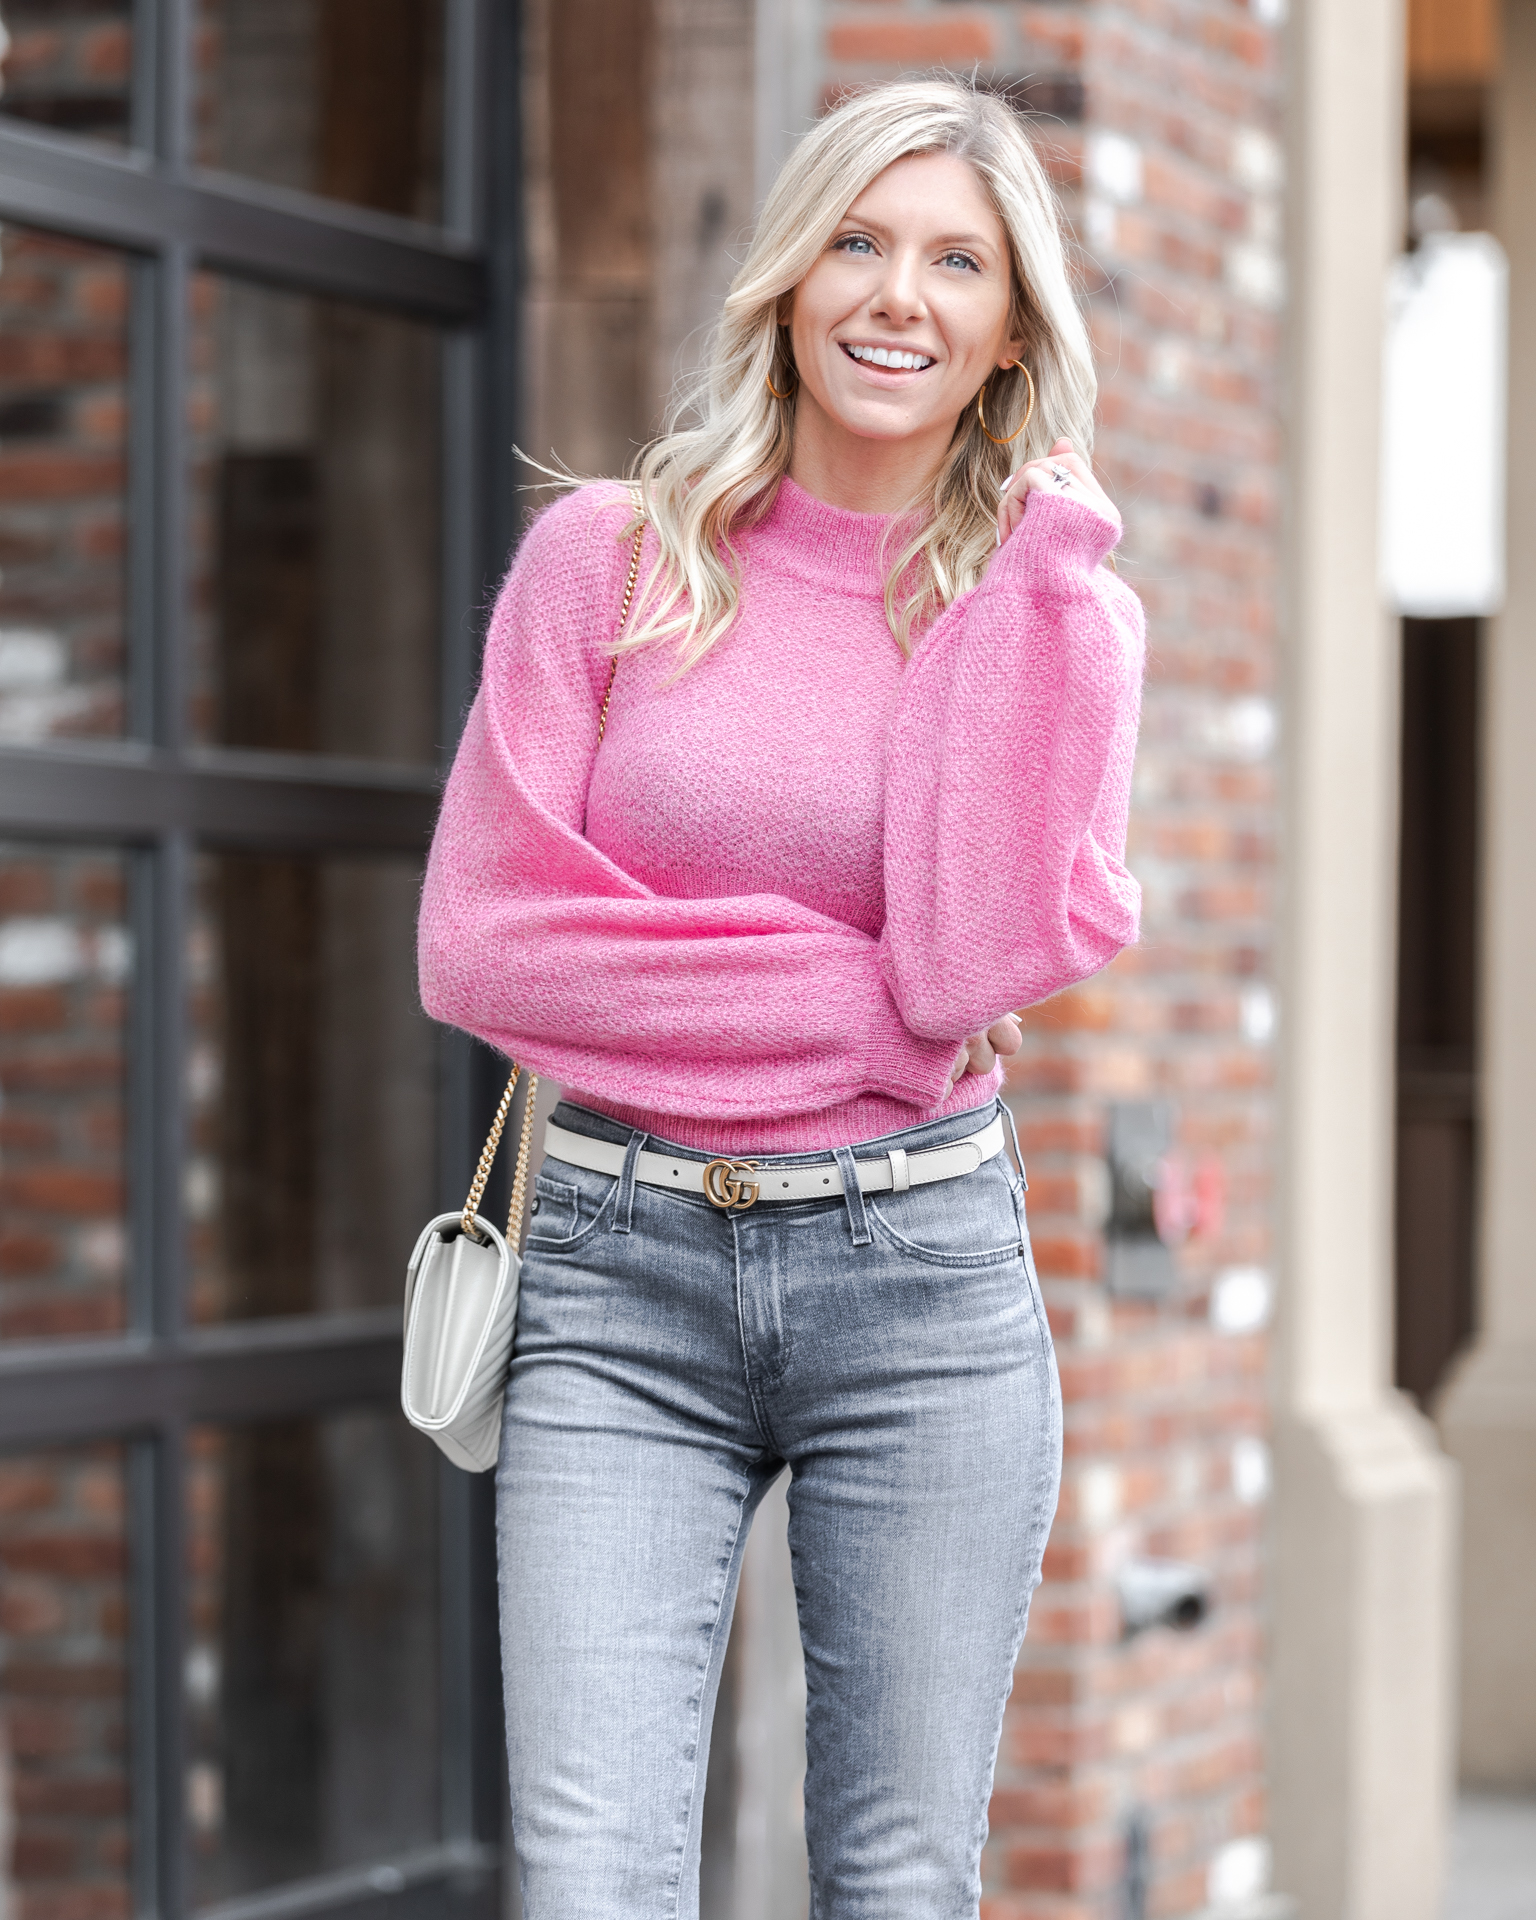 cozy-blush-sweater-nicholas-the-glamorous-gal